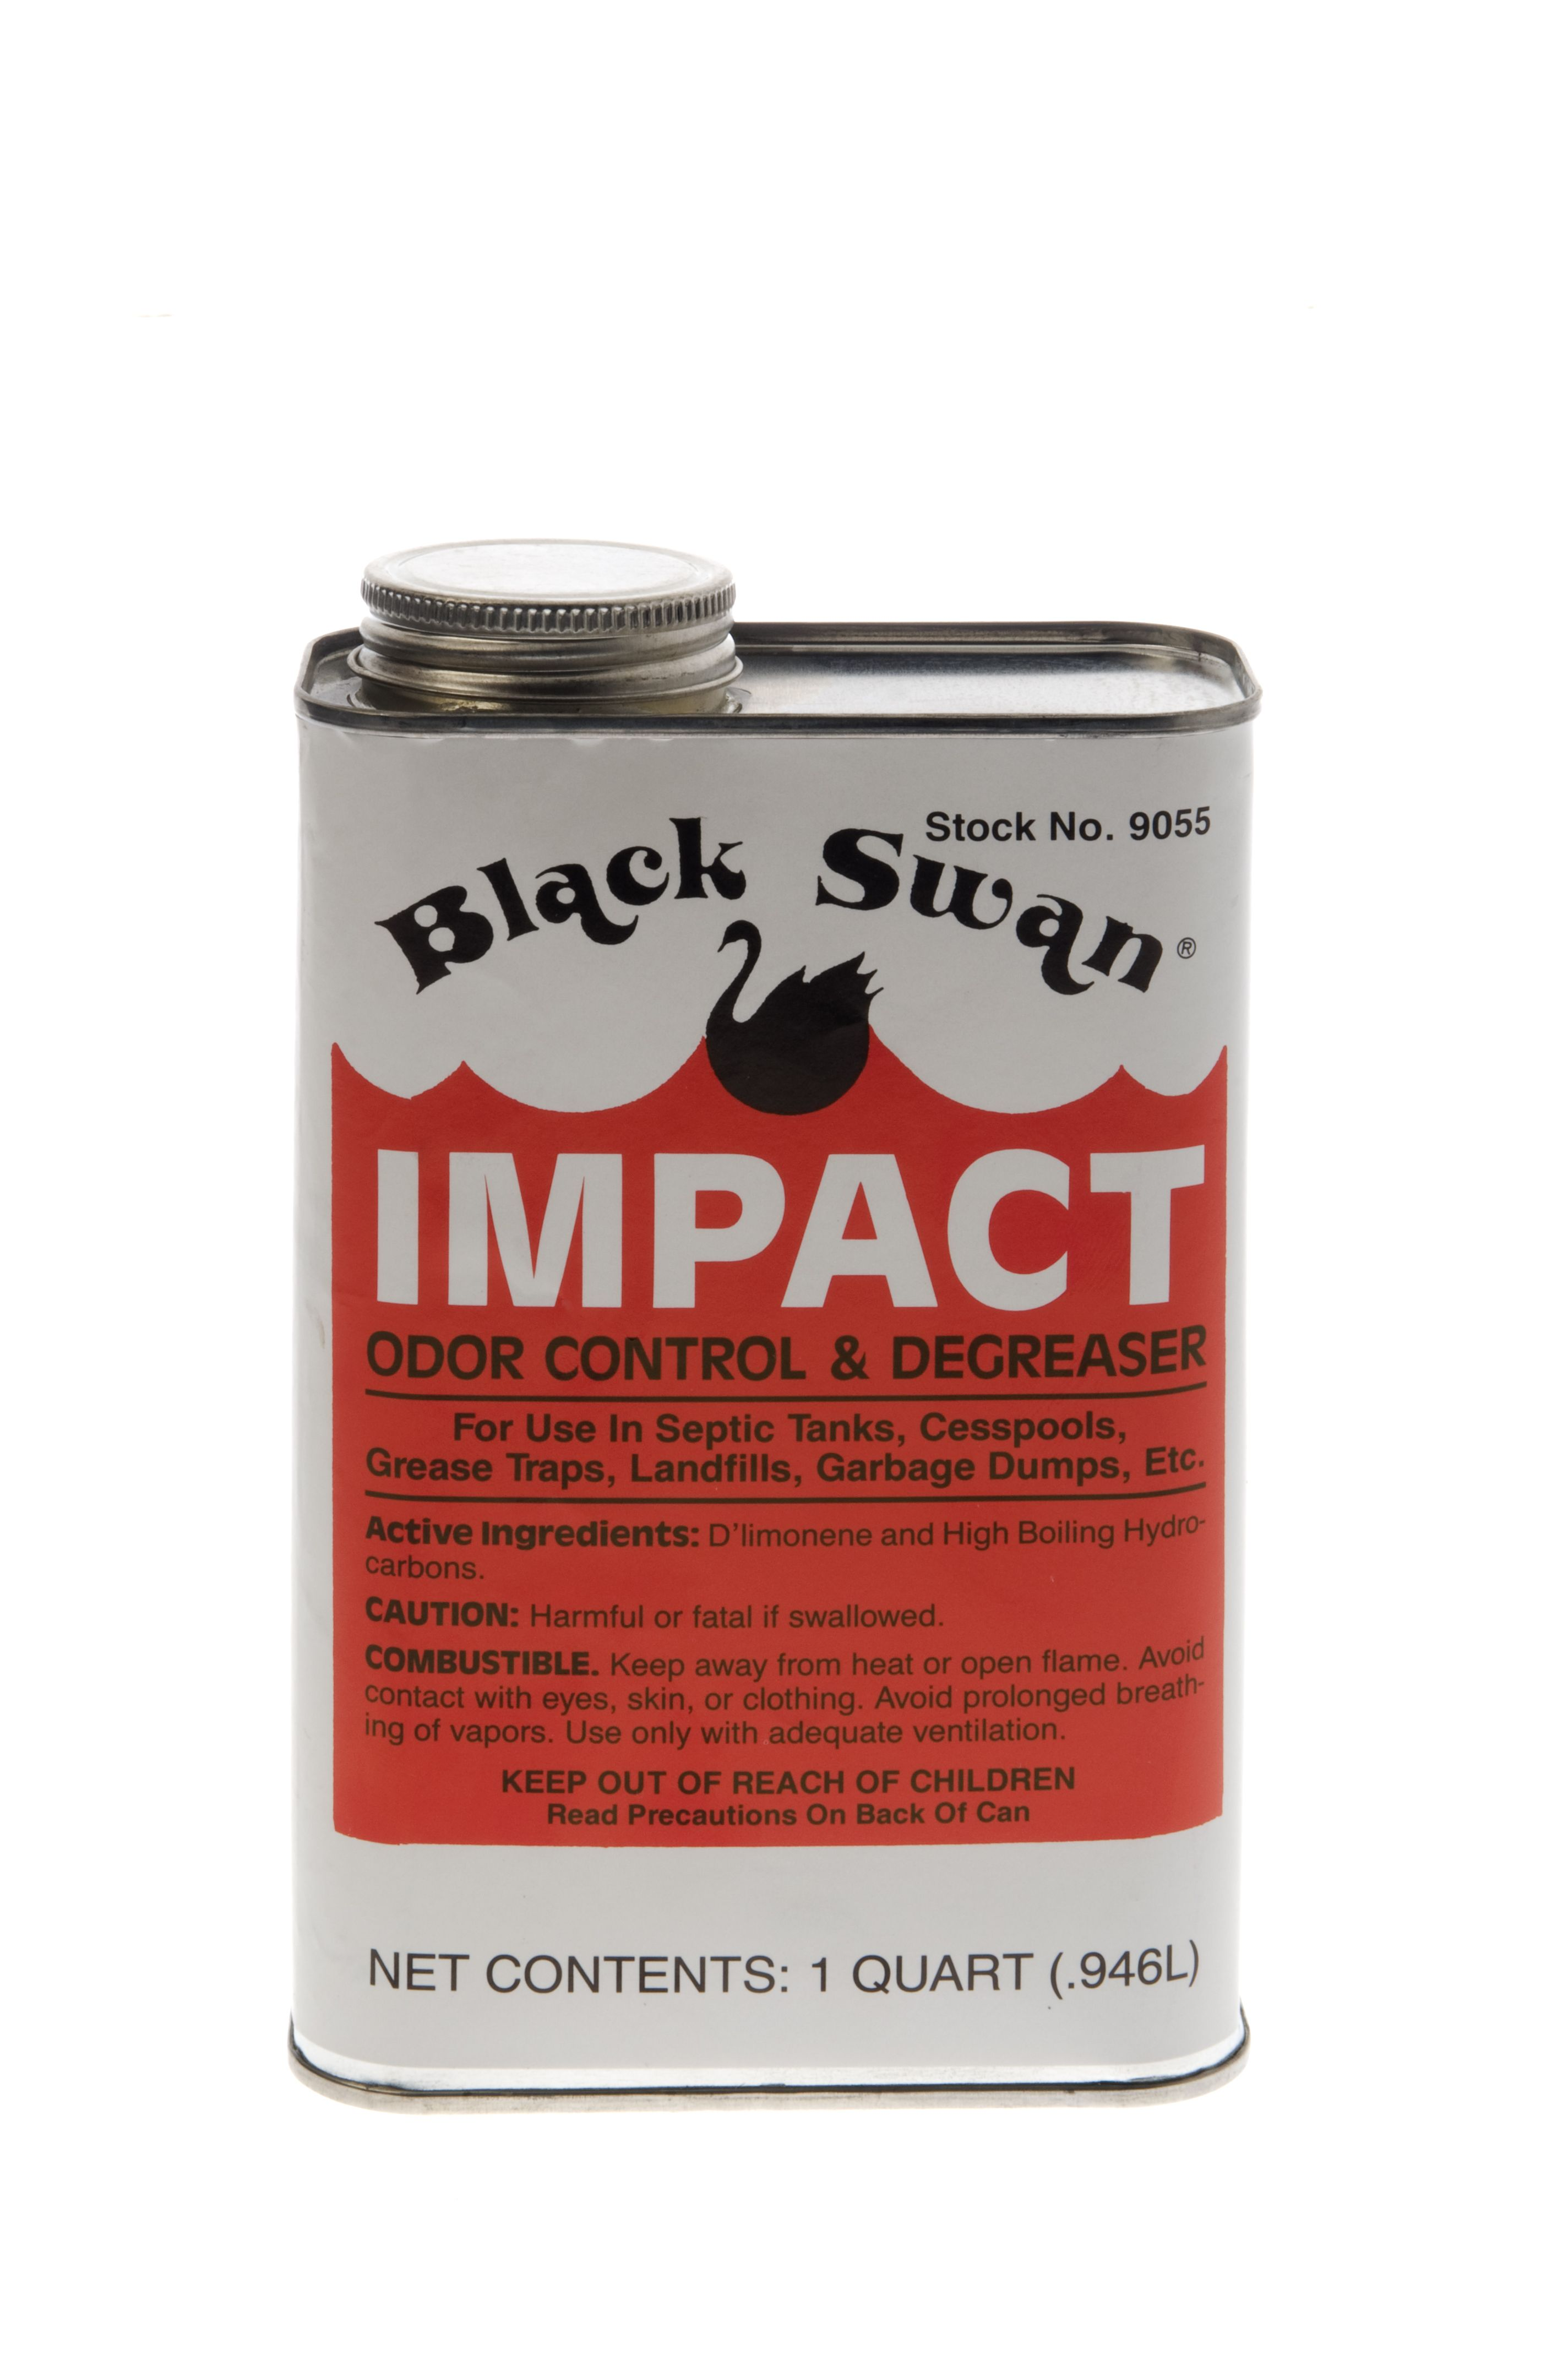 Black Swan Impact Dissolves Grease And Slime And Controls